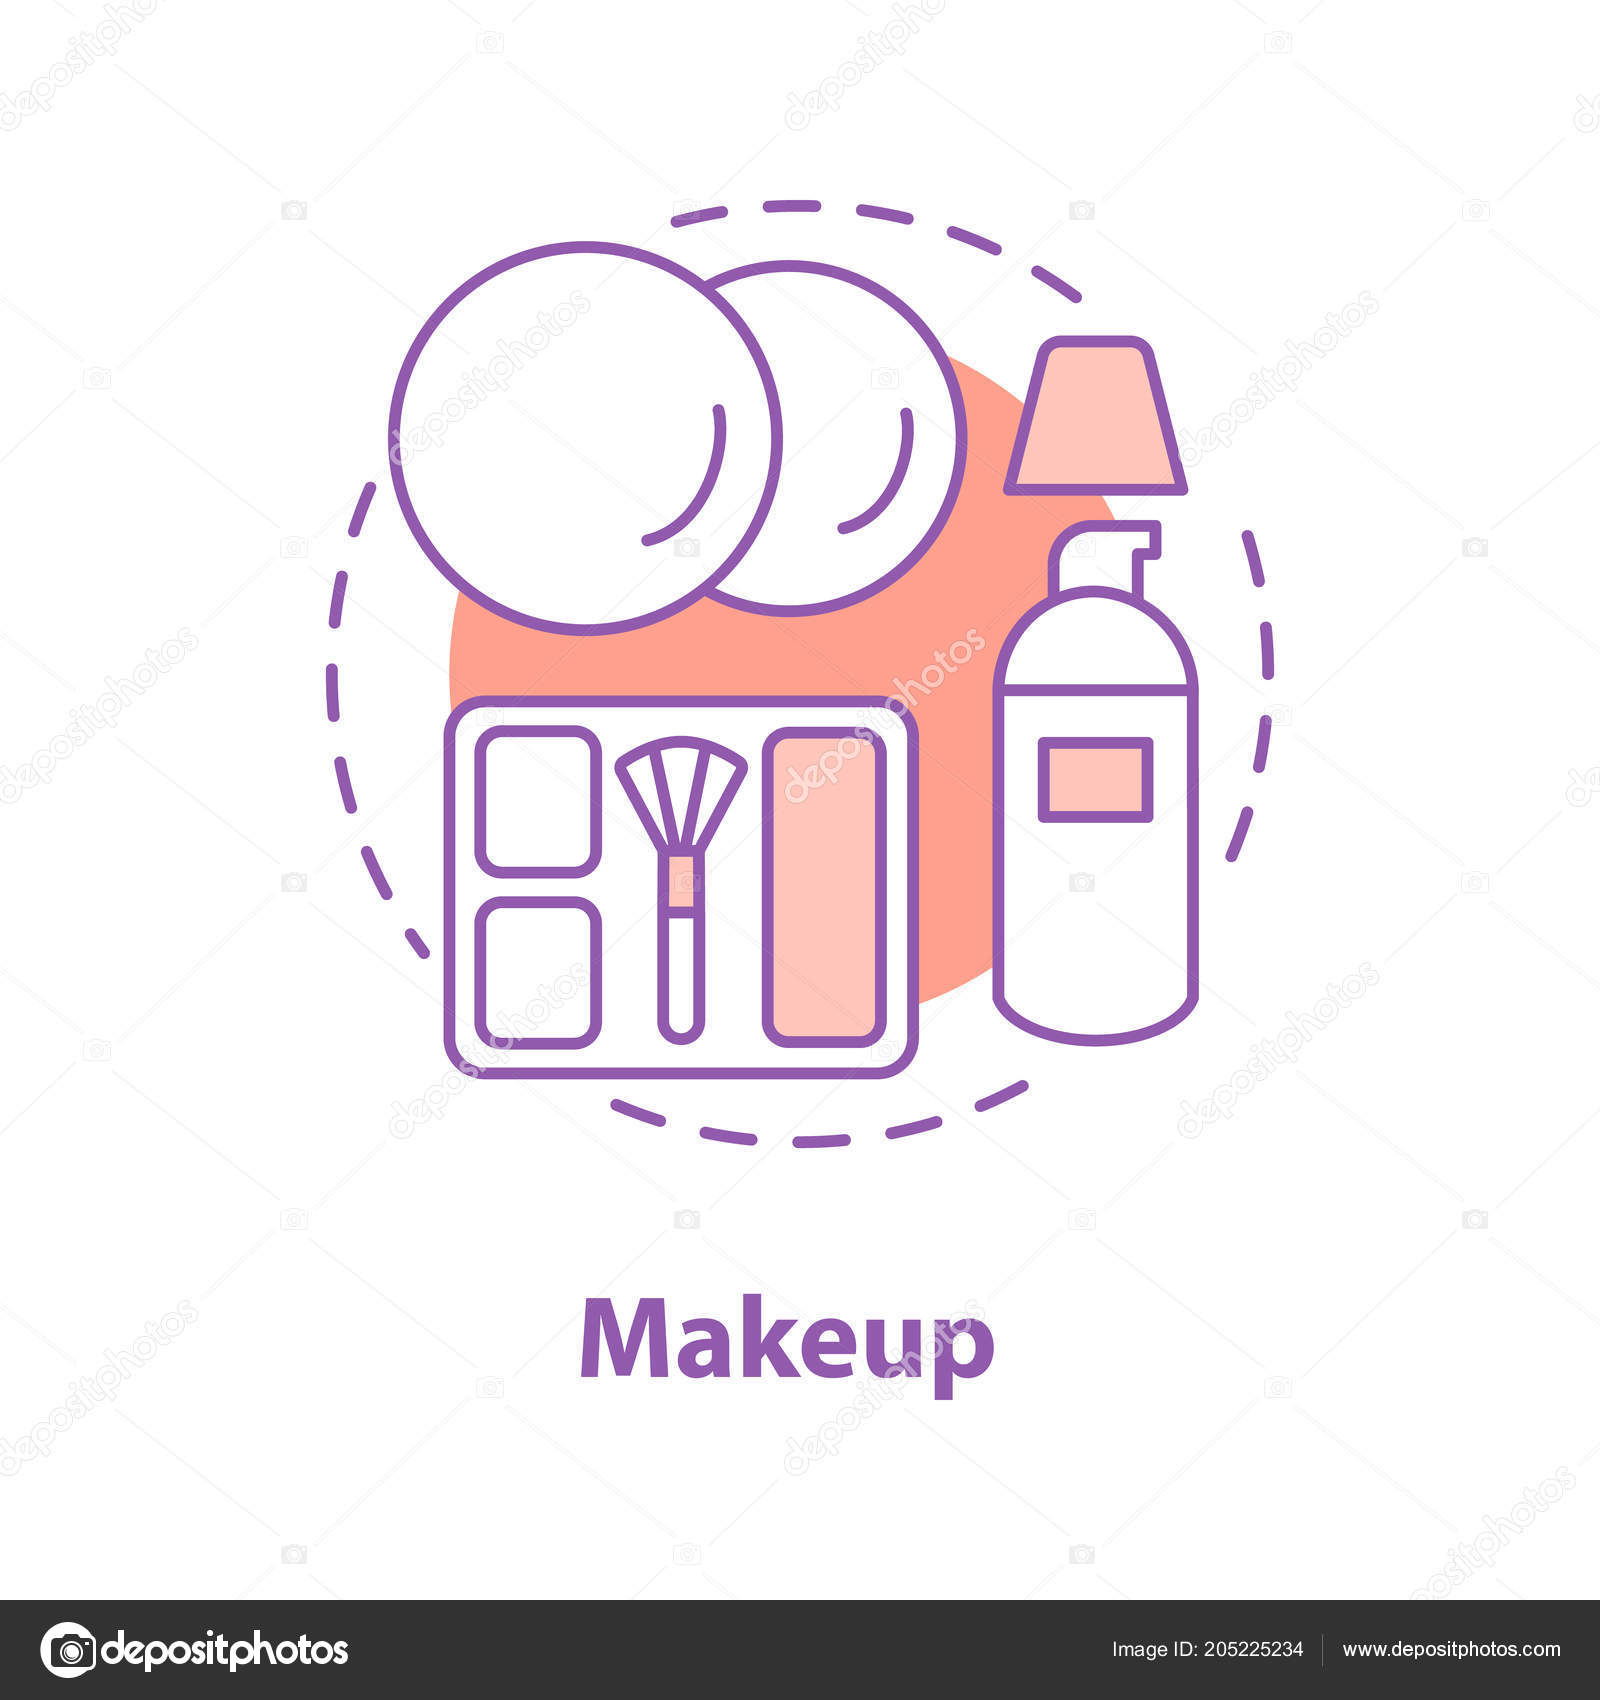 Makeup Concept Icon Cosmetics Idea Thin Line Illustration